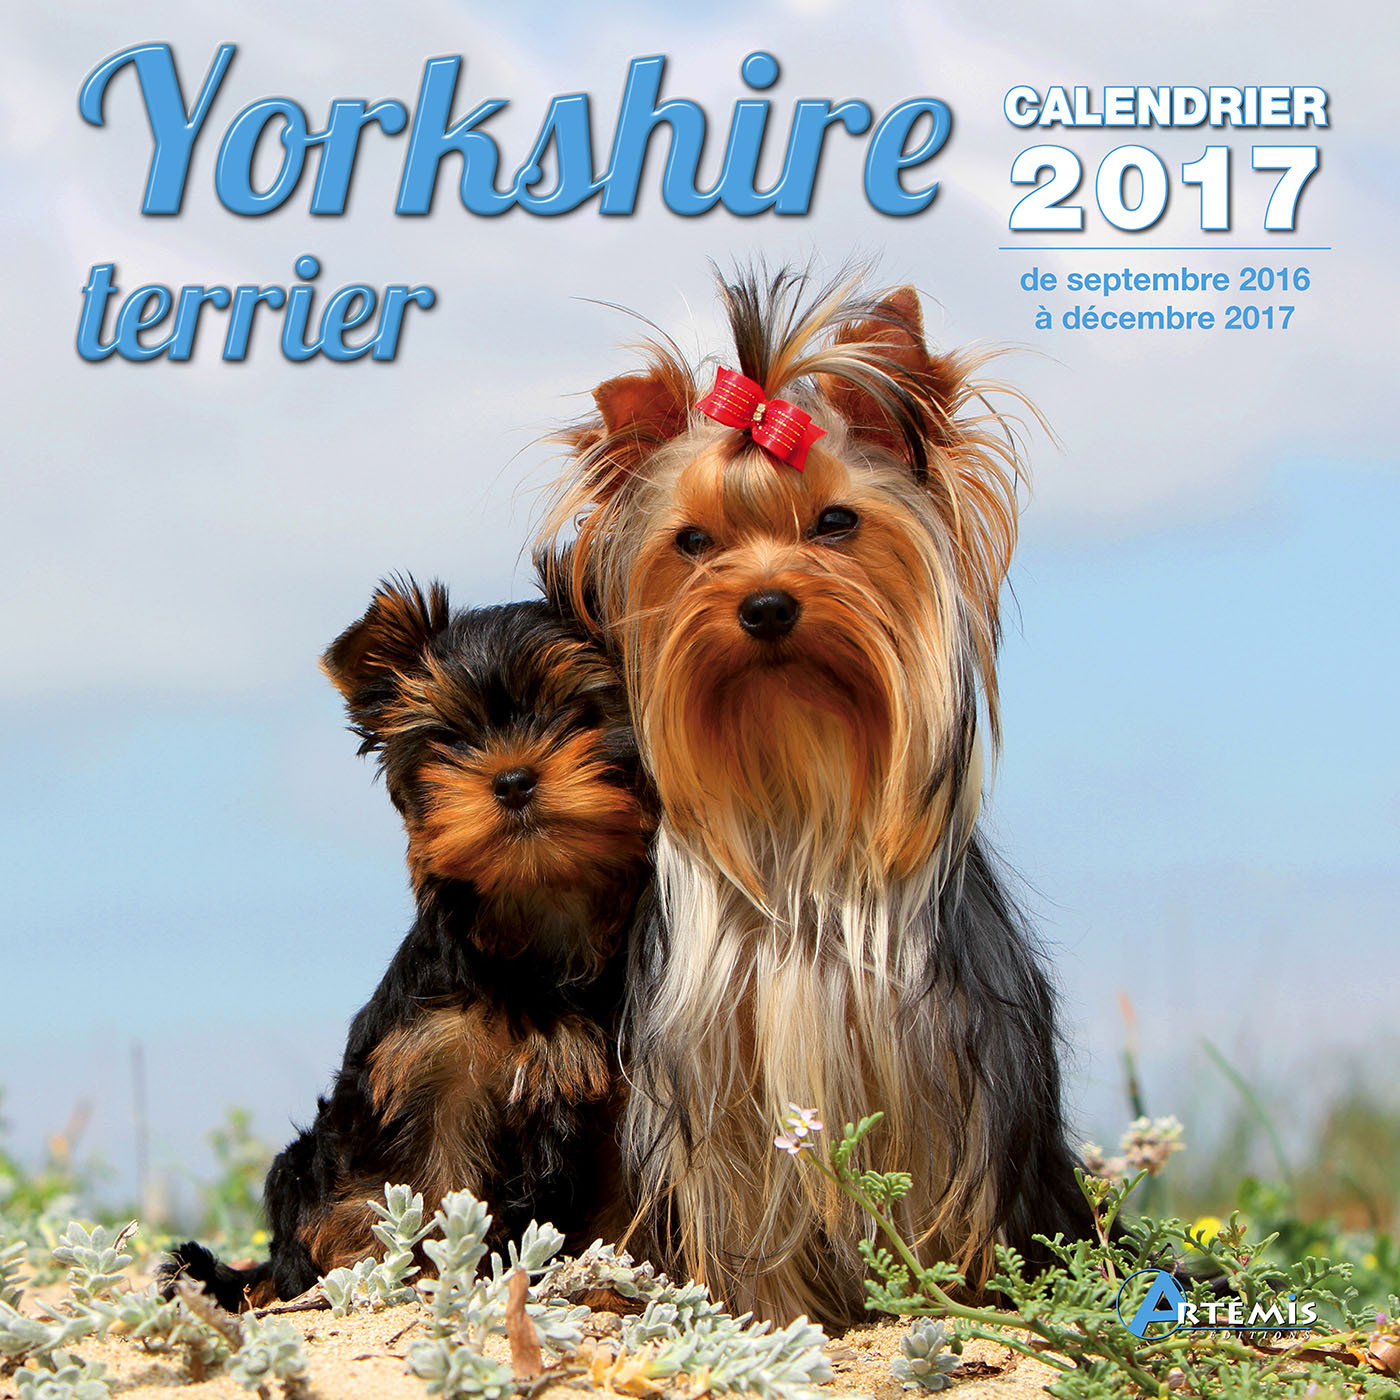 CALENDRIER YORKSHIRE TERRIER 2017